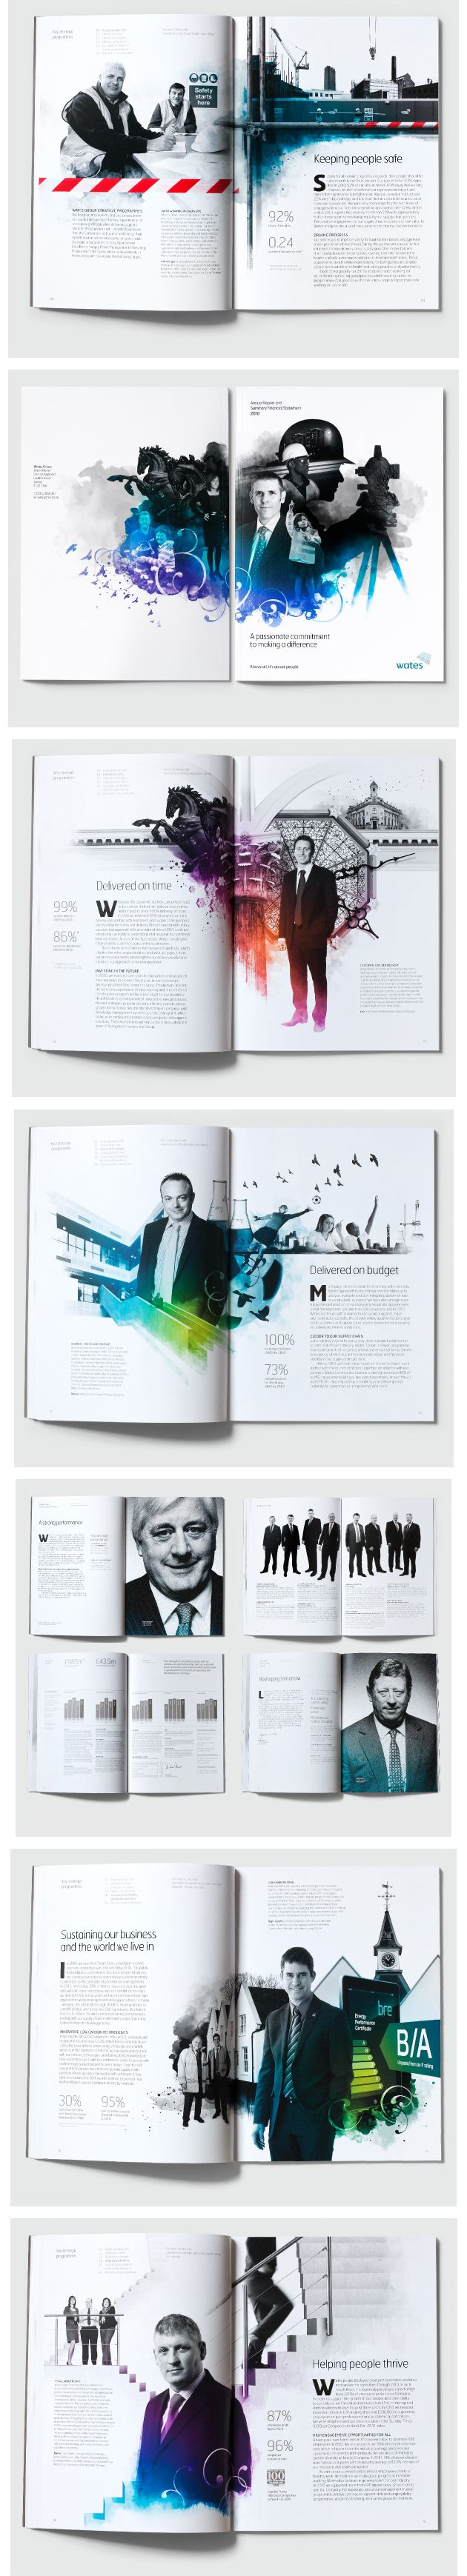 wates group - 2010 annual report | Love this use of white space, grayscale images and splashes of color.